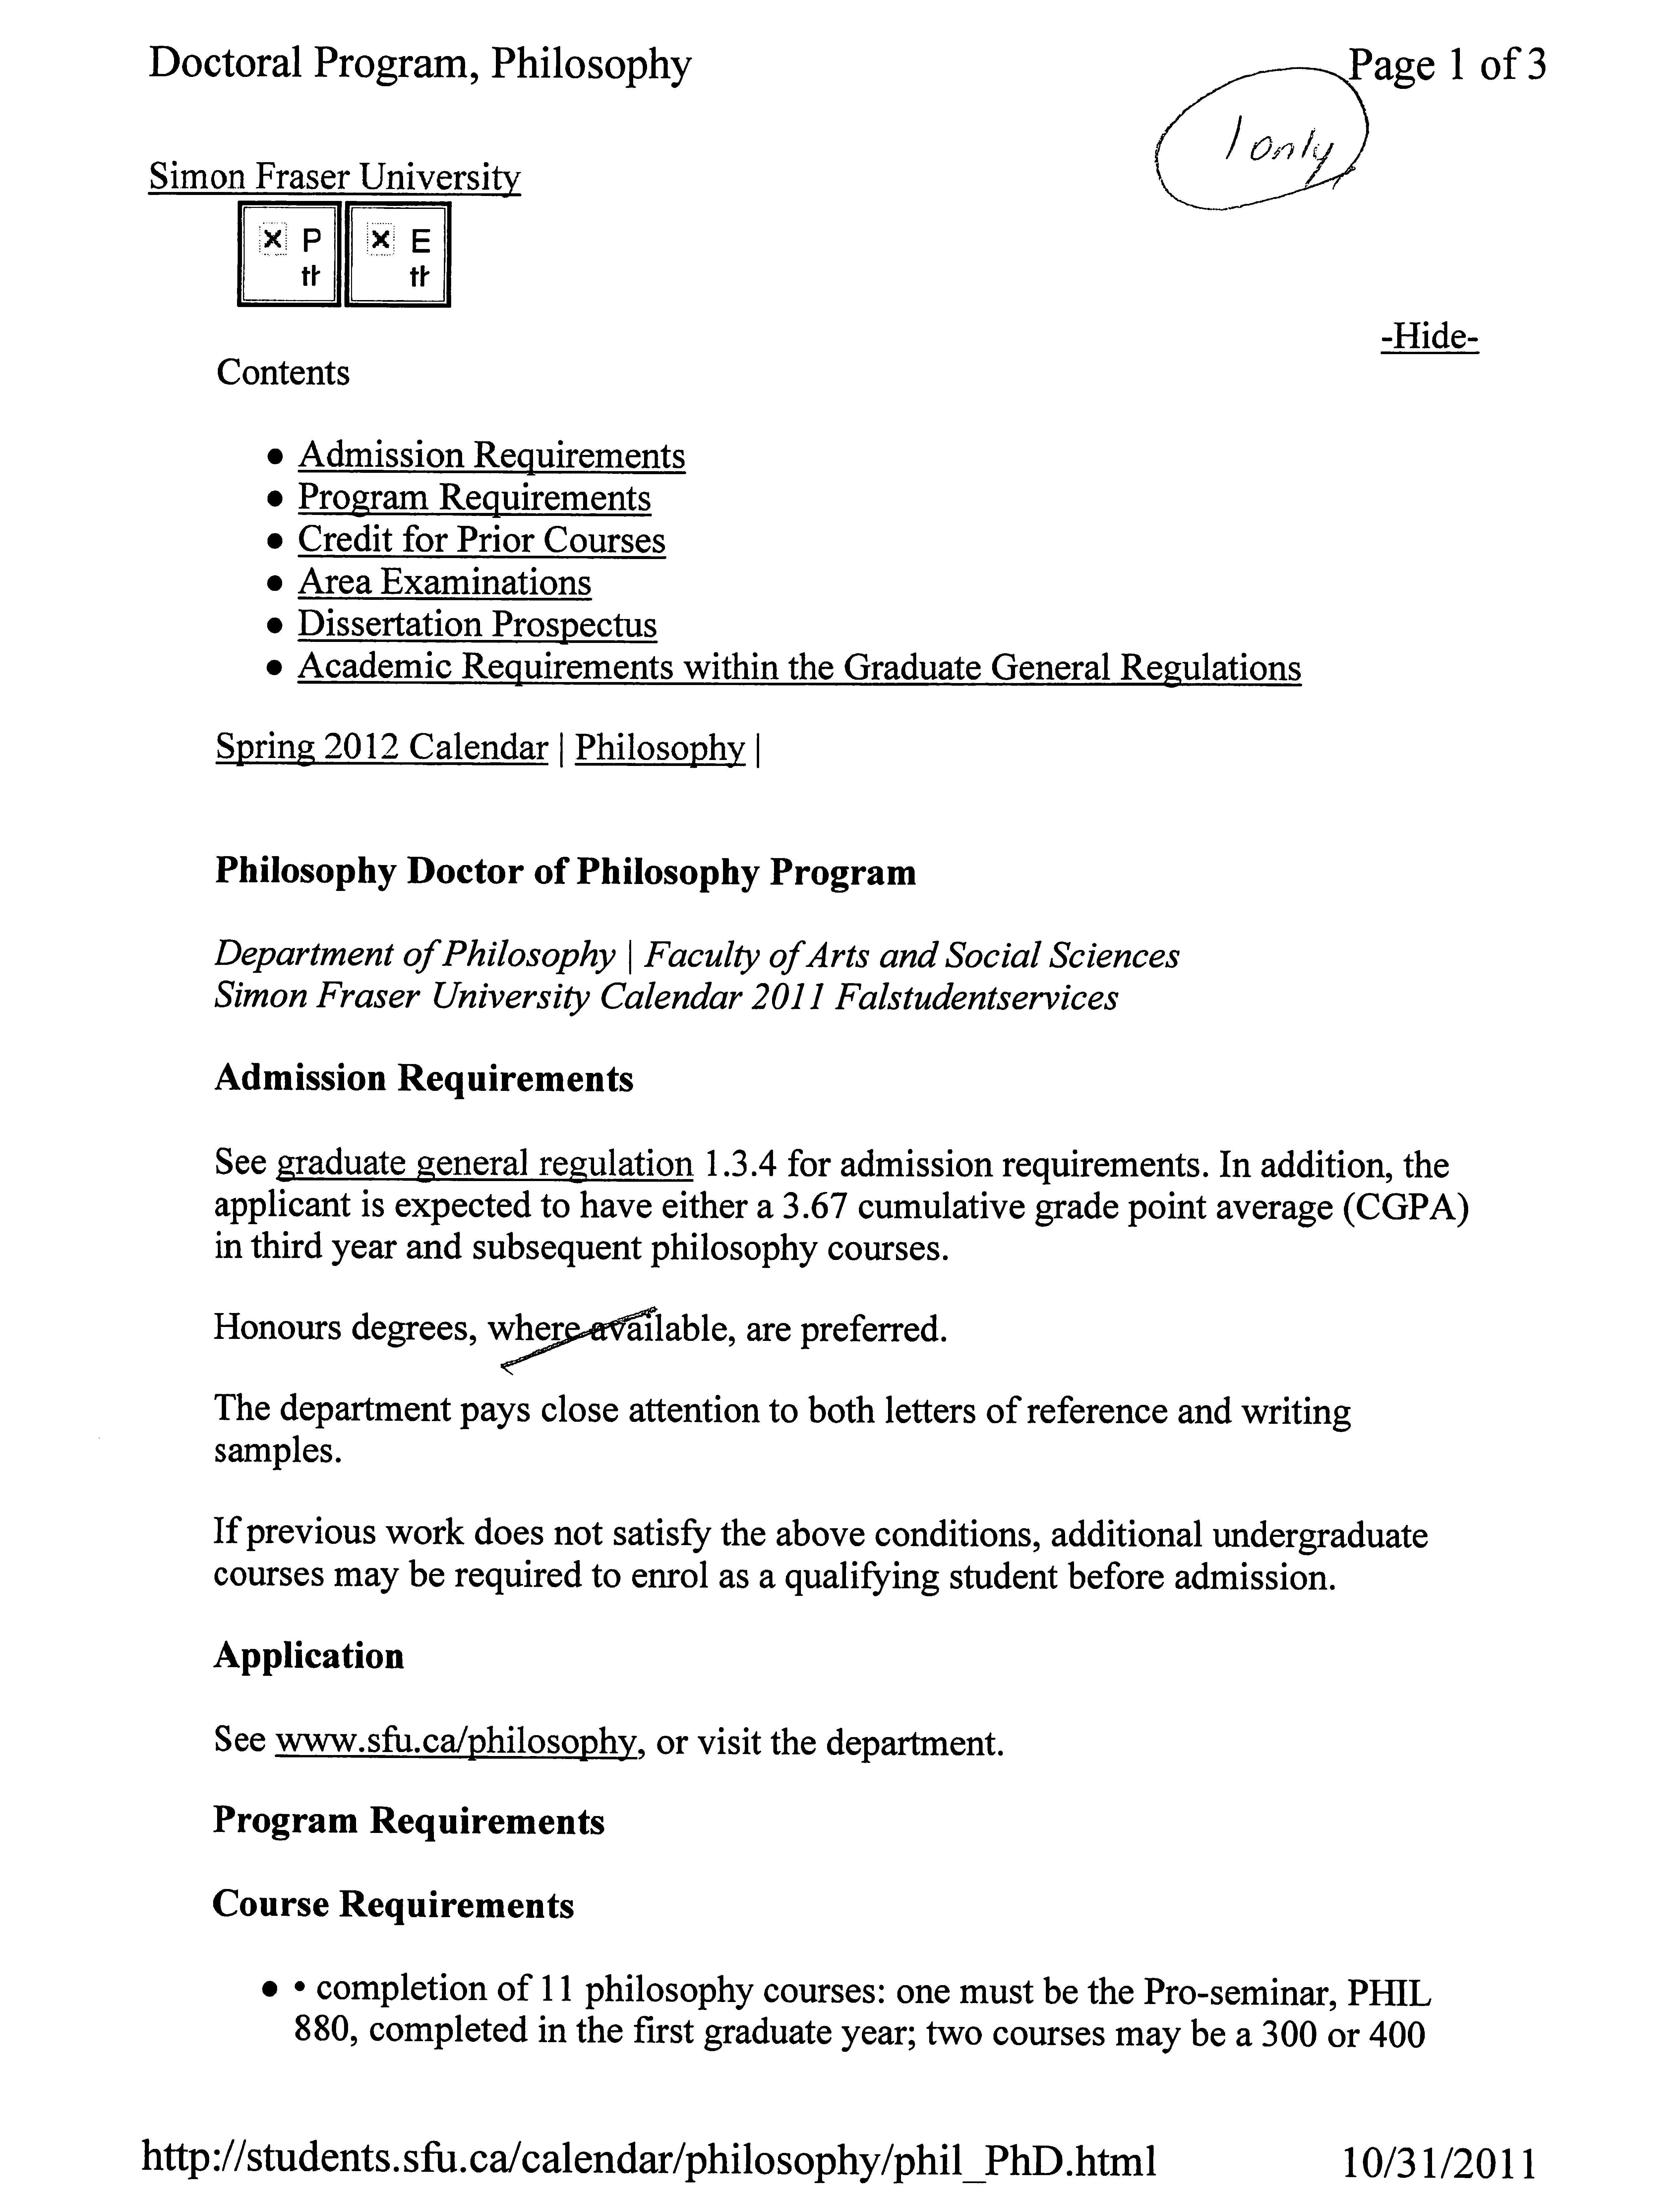 Thesis research prospectus : Help to write resume